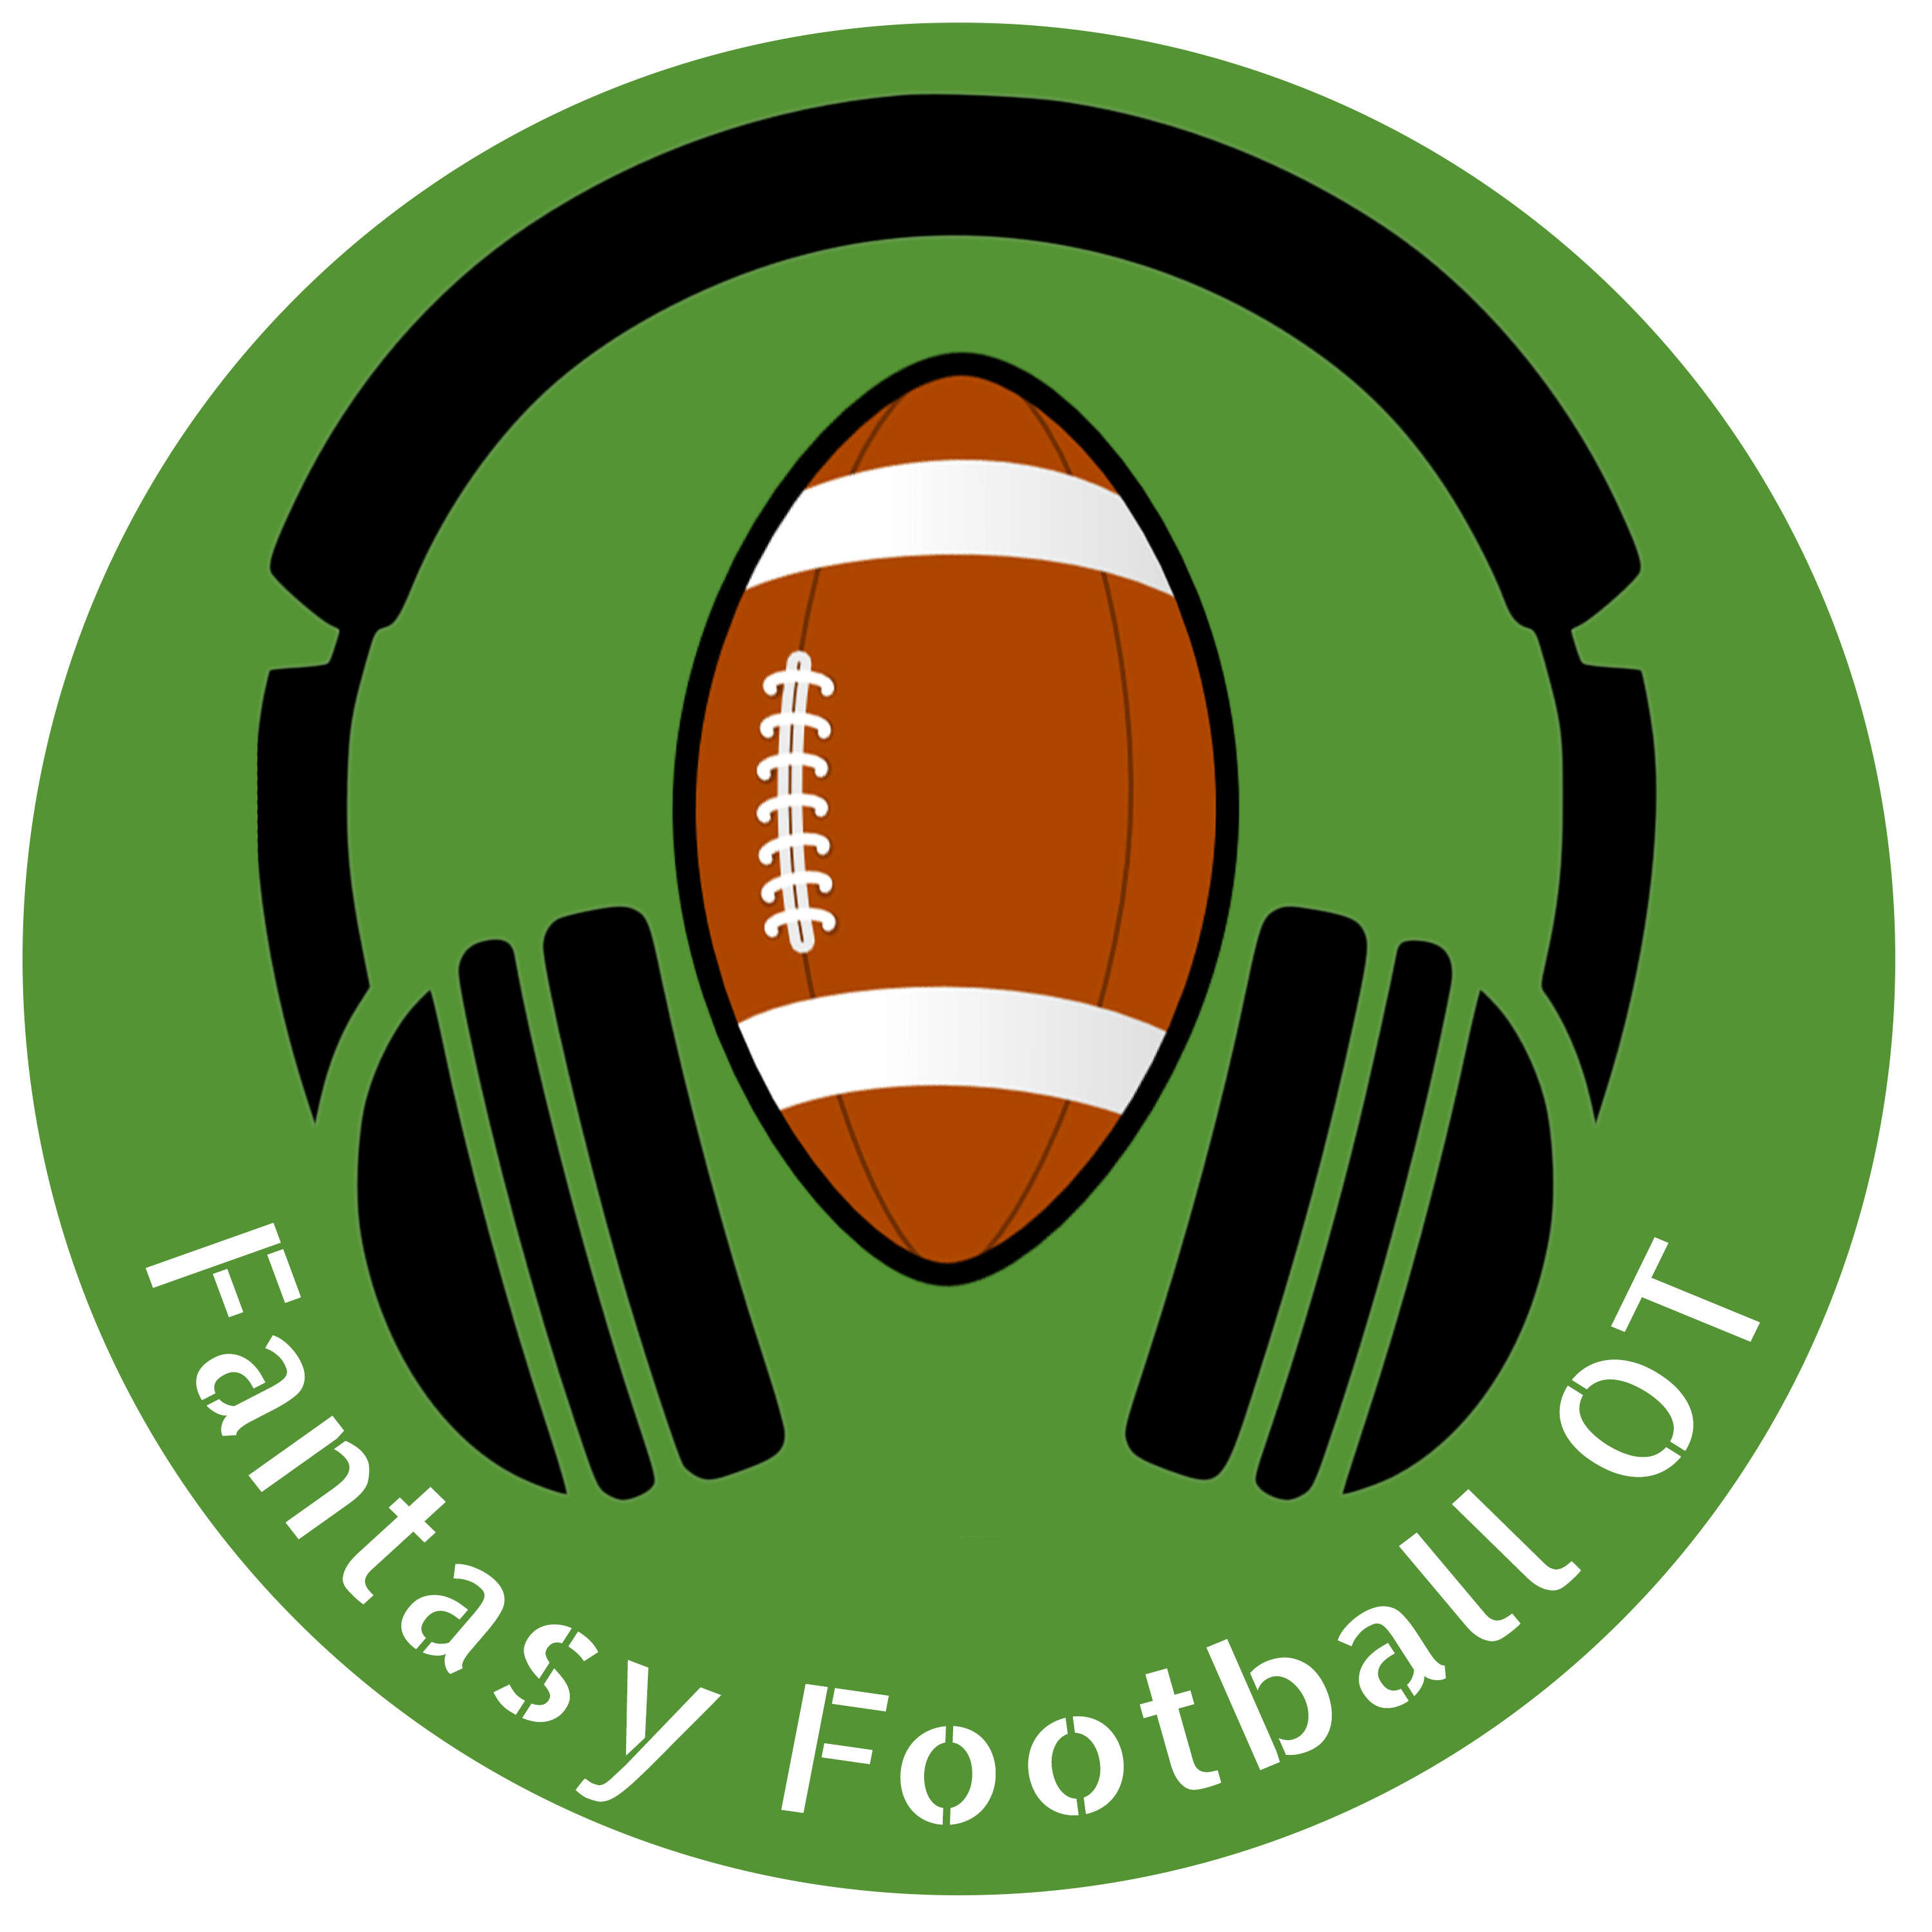 Top 12 RB of 2020 Fantasy Football Season Episode 025